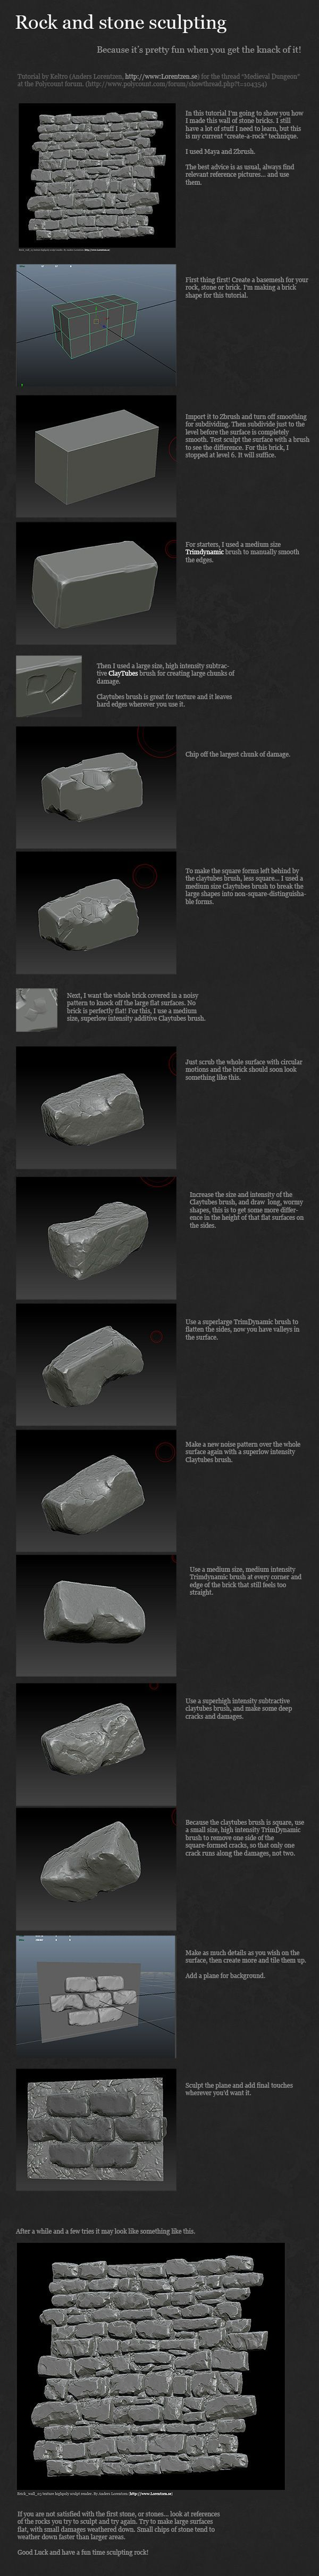 Medieval Dungeon [UDK] - Page 2 - Polycount Forum: